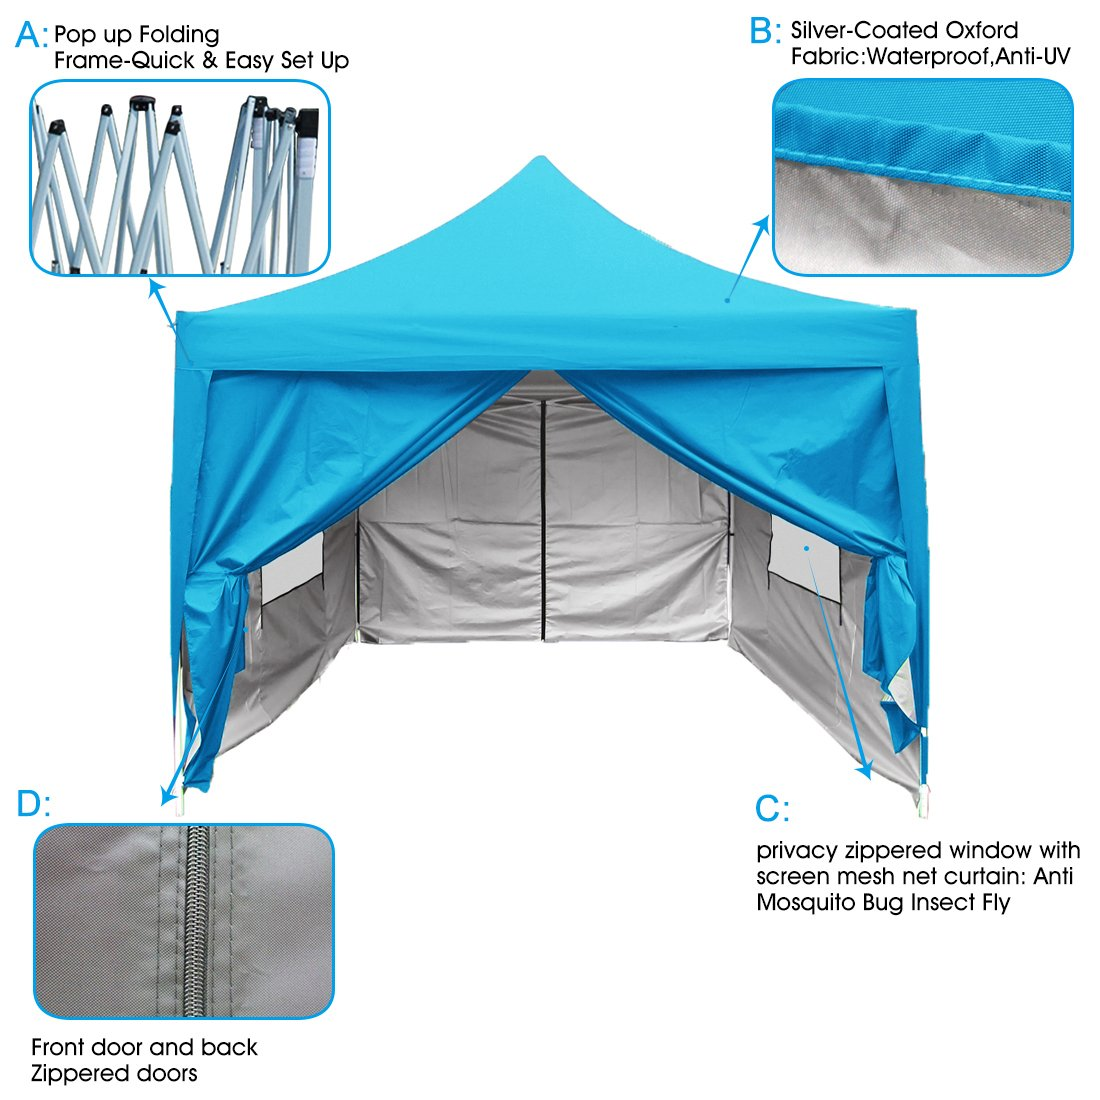 Quictent privacy Pyramid-roofed 8'x8' Mesh Curtain EZ Pop Up Canopy Tent Instant Canopy Gazebo 3 adjust point-7 Colors (Light Blue) by Quictent